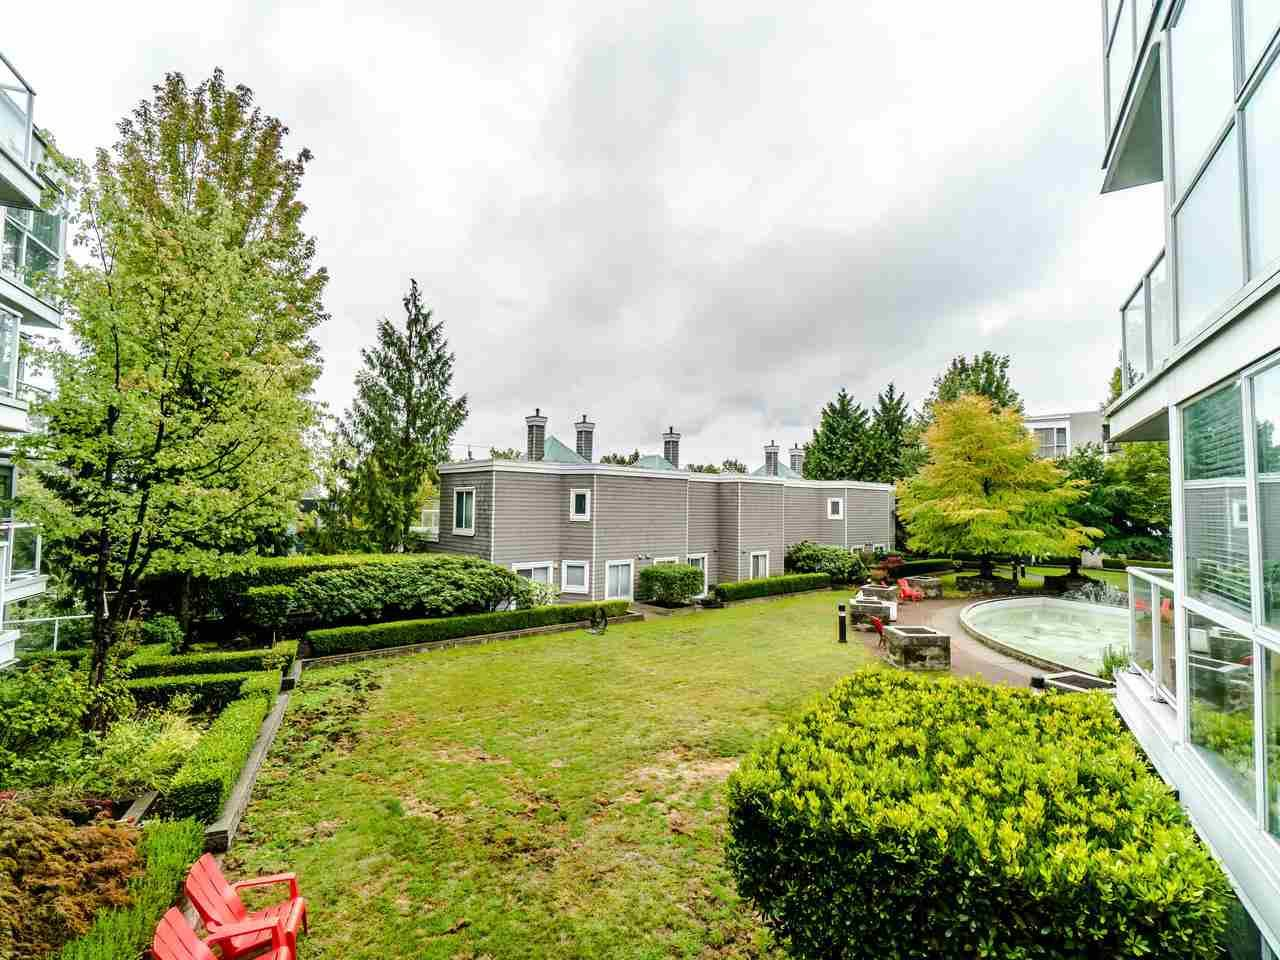 """Main Photo: 210 8450 JELLICOE Street in Vancouver: South Marine Condo for sale in """"THE BOARDWALK"""" (Vancouver East)  : MLS®# R2406380"""